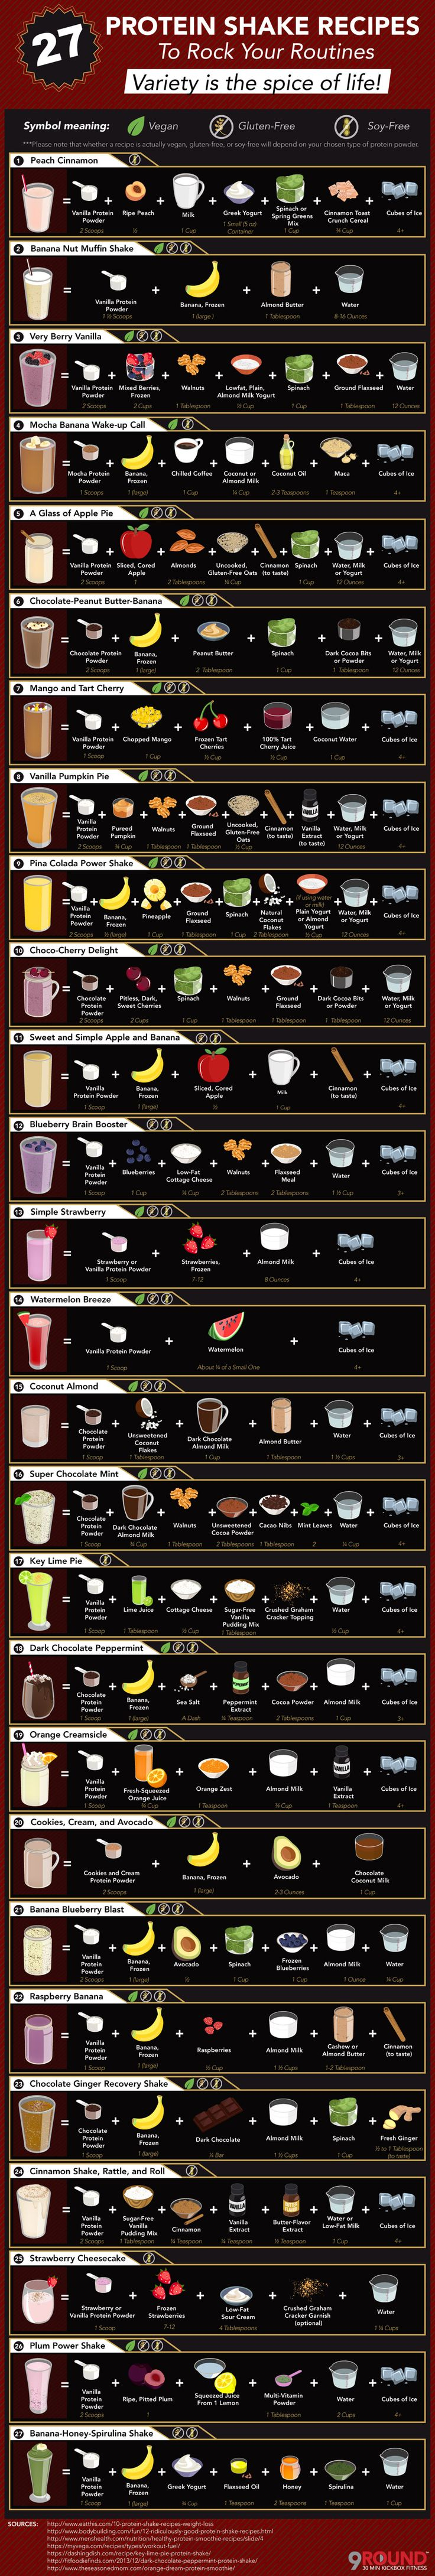 Protein Shake Recipes http://www.weightlossjumpstar.com/how-to-start-losing-weight-for-beginners/